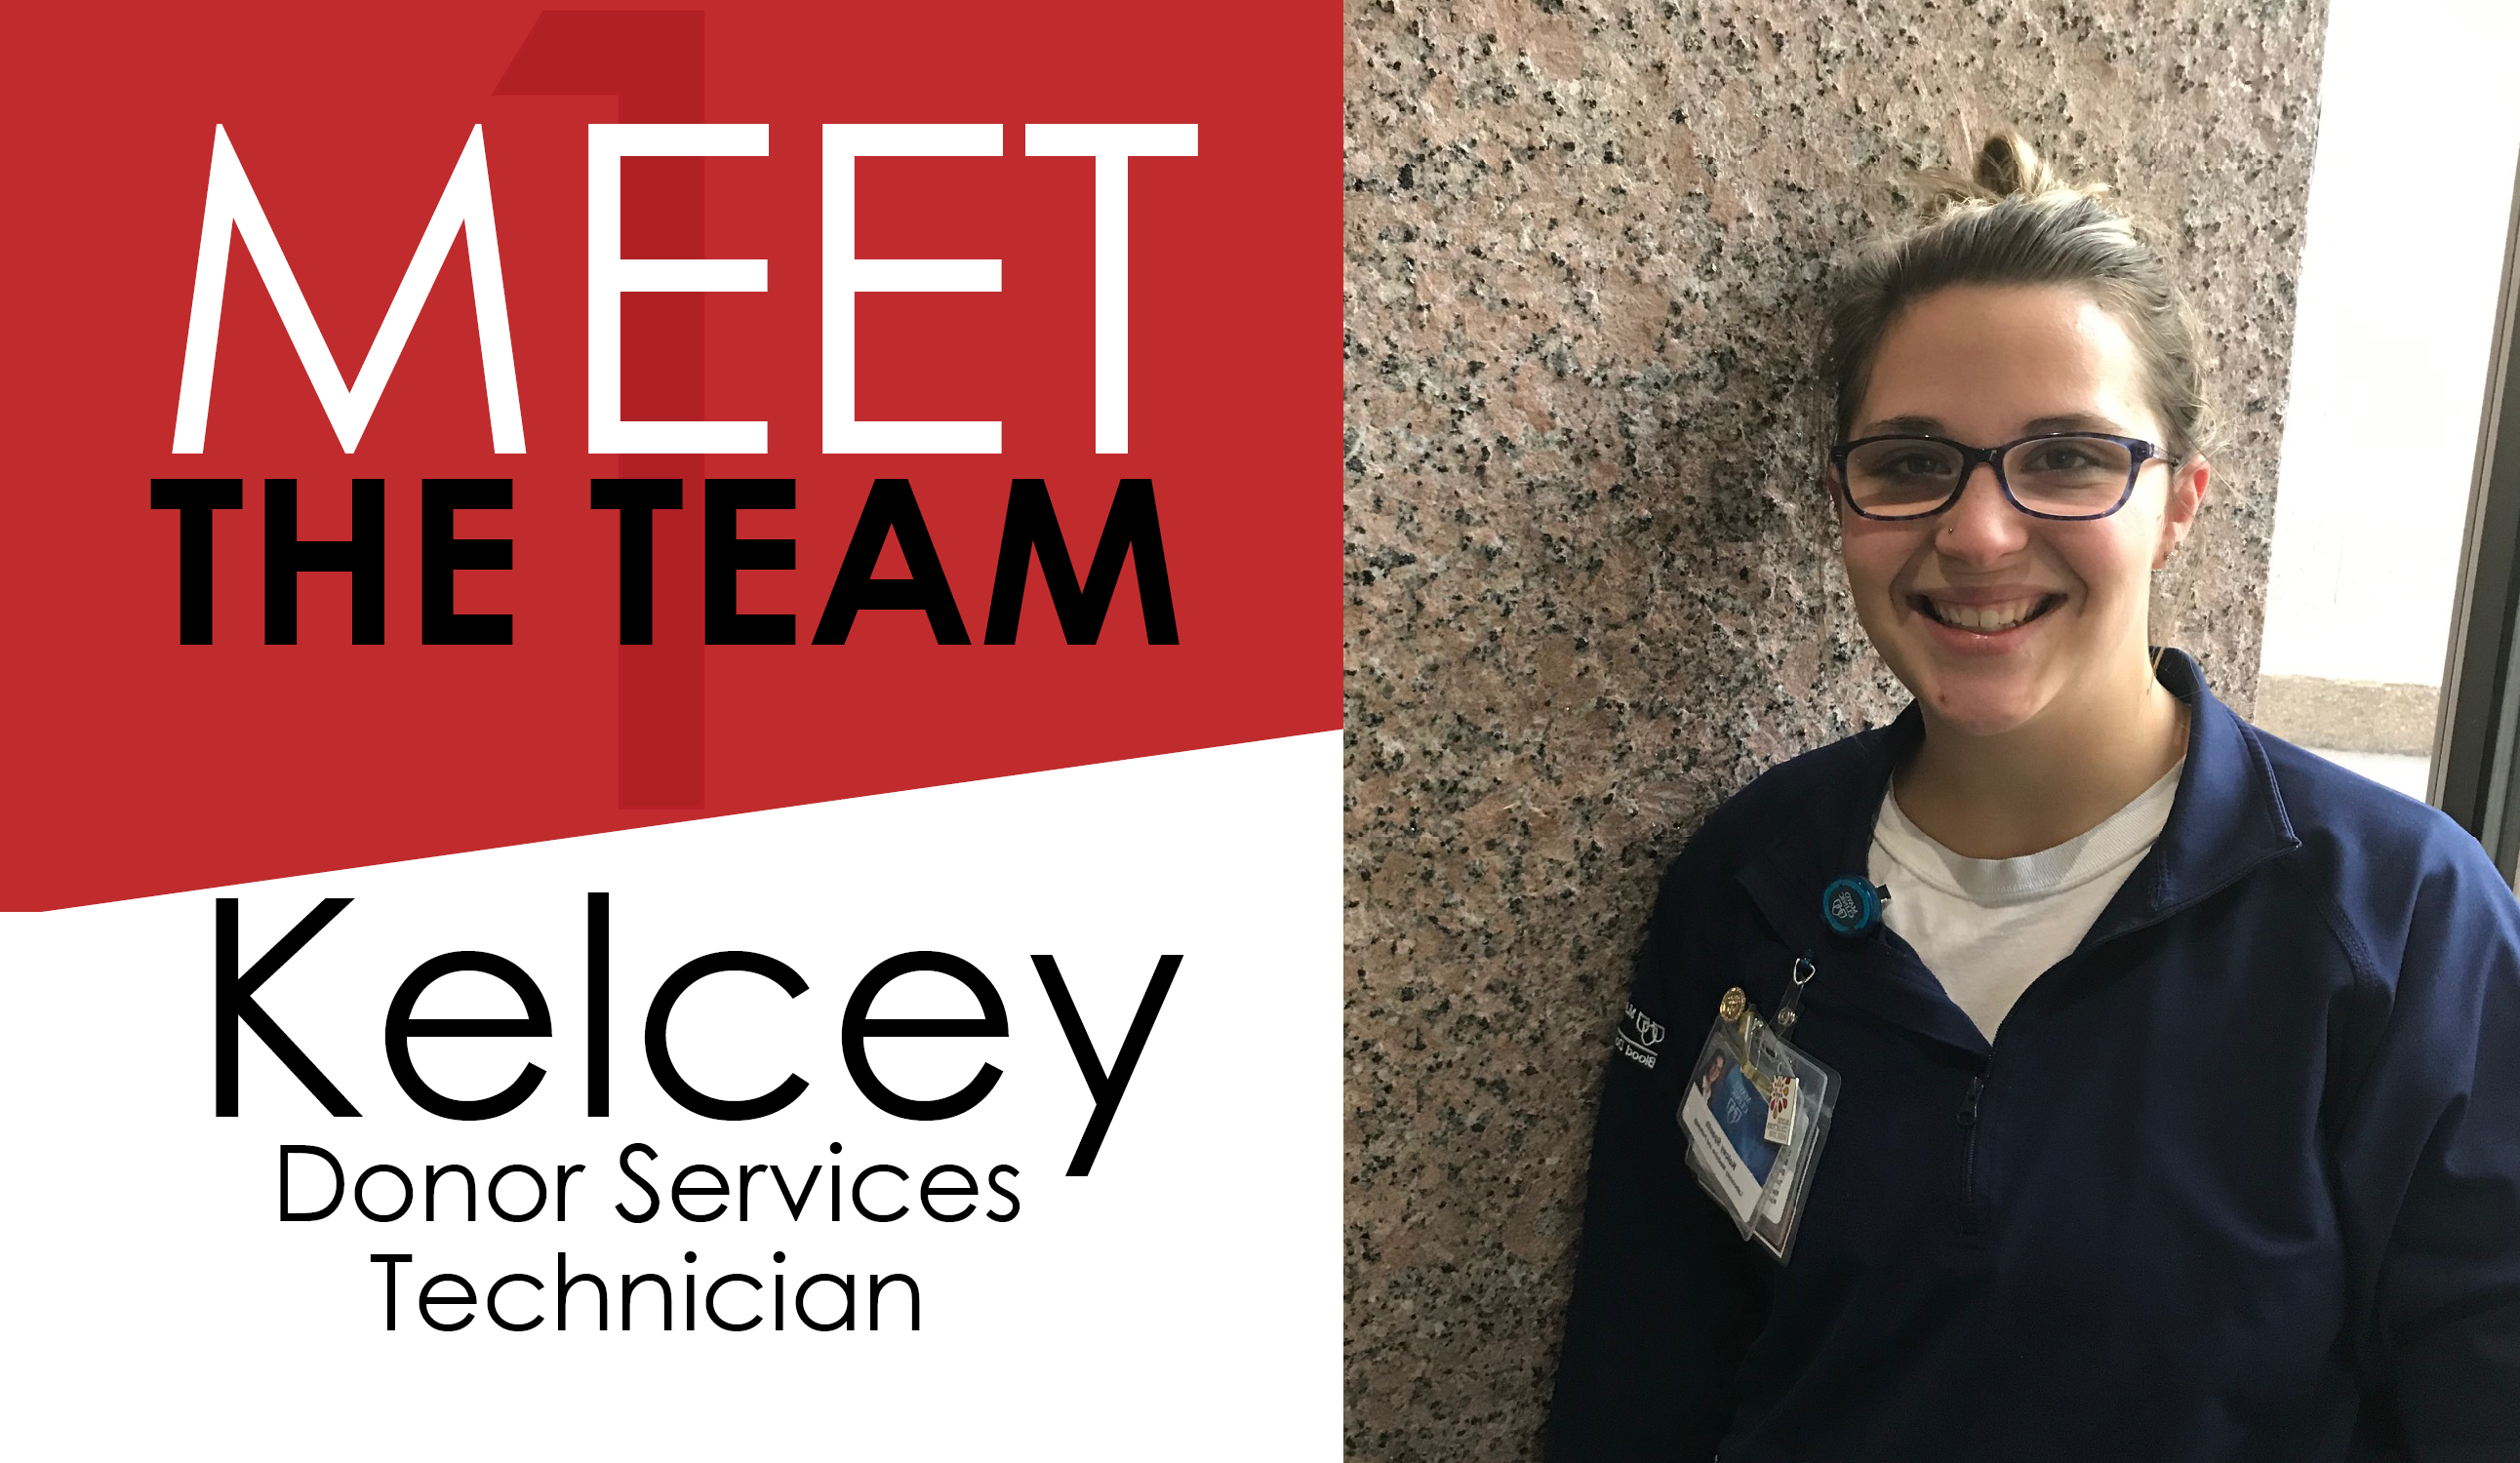 Meet the team - Kelcey